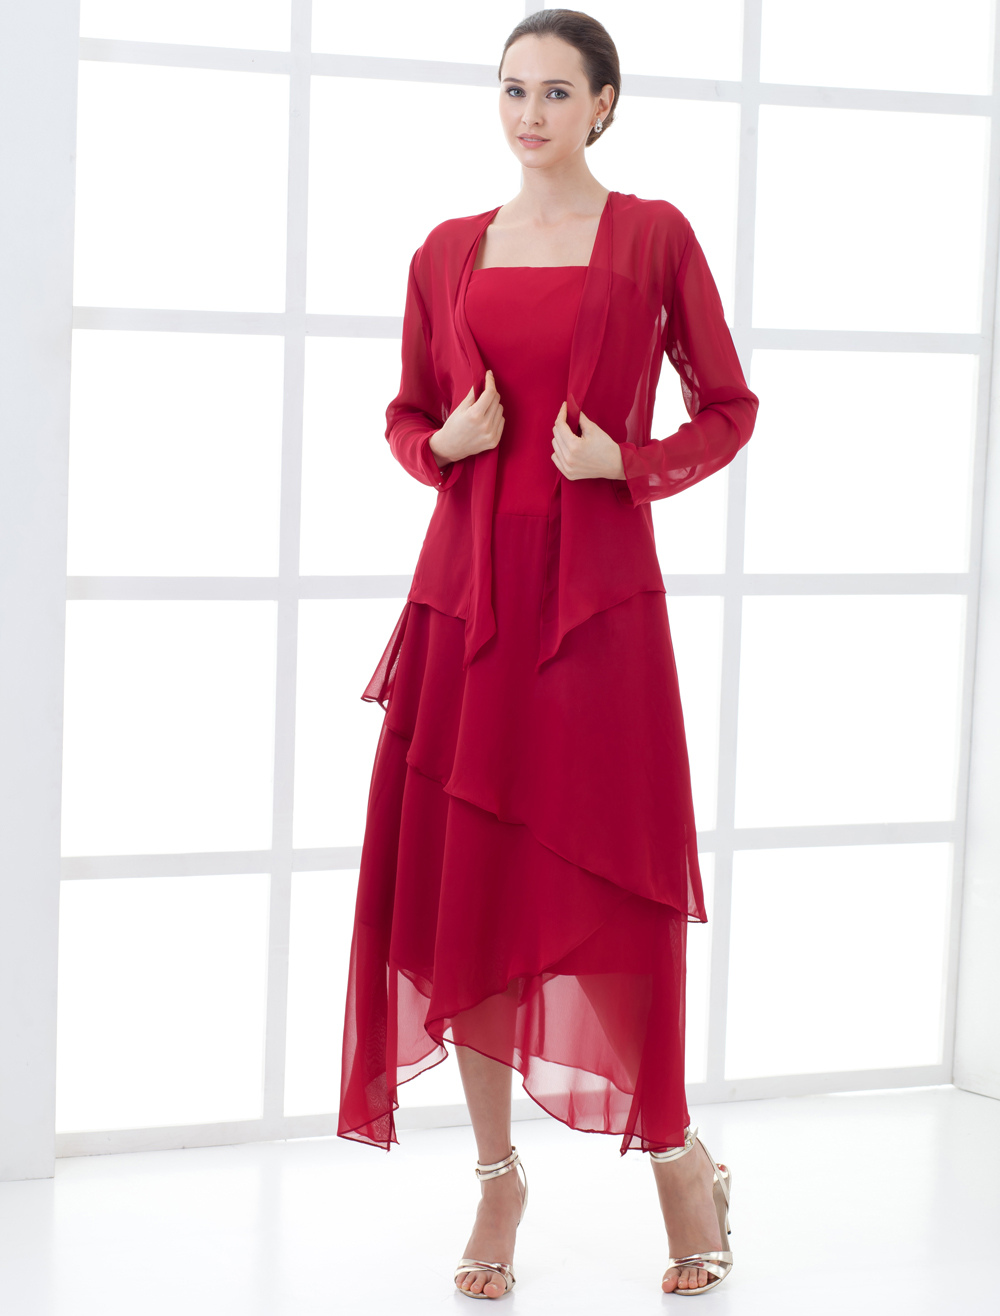 Elegant Wine Red Chiffon Mother Of The Bride Dress $94.43 AT vintagedancer.com